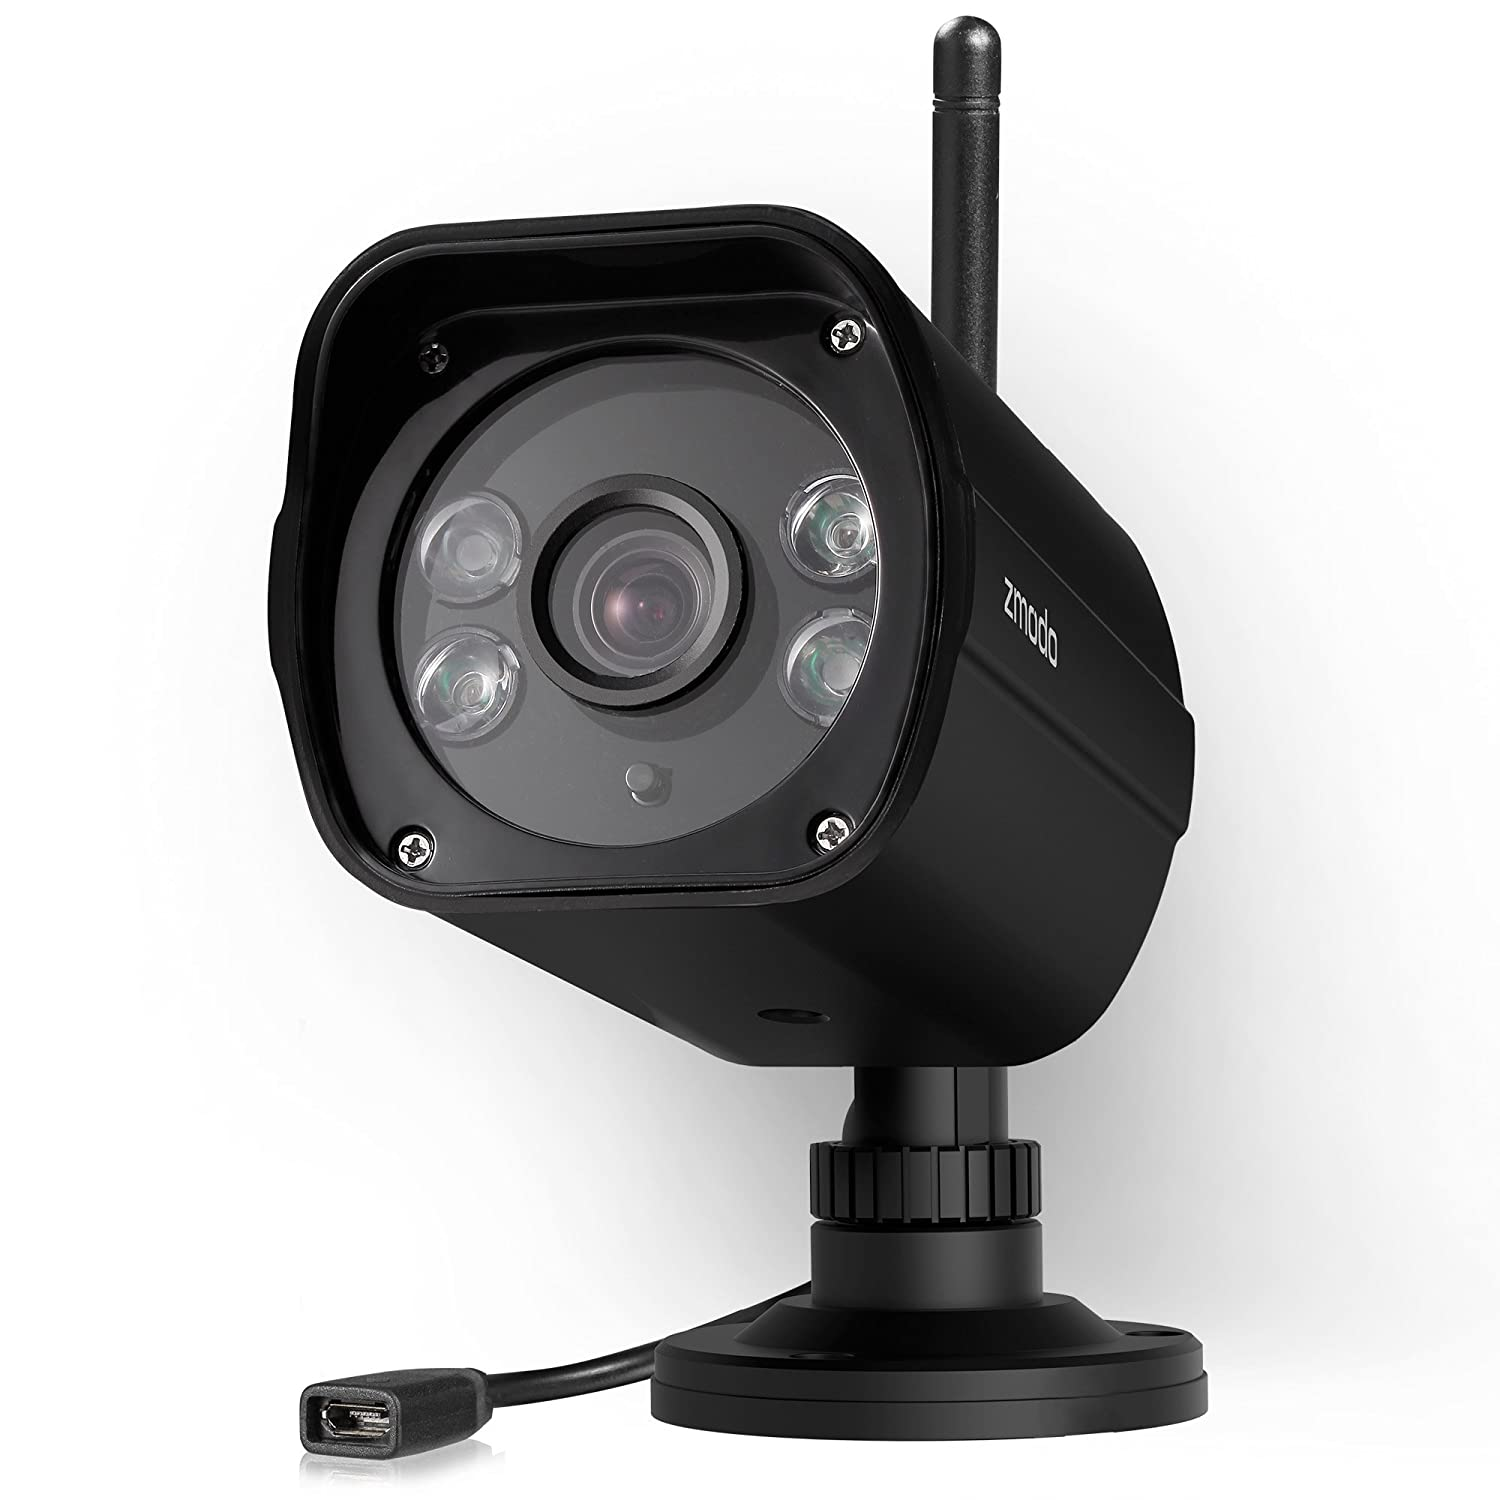 Zmodo 1080p Full HD Wireless Security Camera System, Dual Band 5GHz/2 4GHz,  98ft Night Vision, 96° Wide Viewing Angle - Works with Alexa